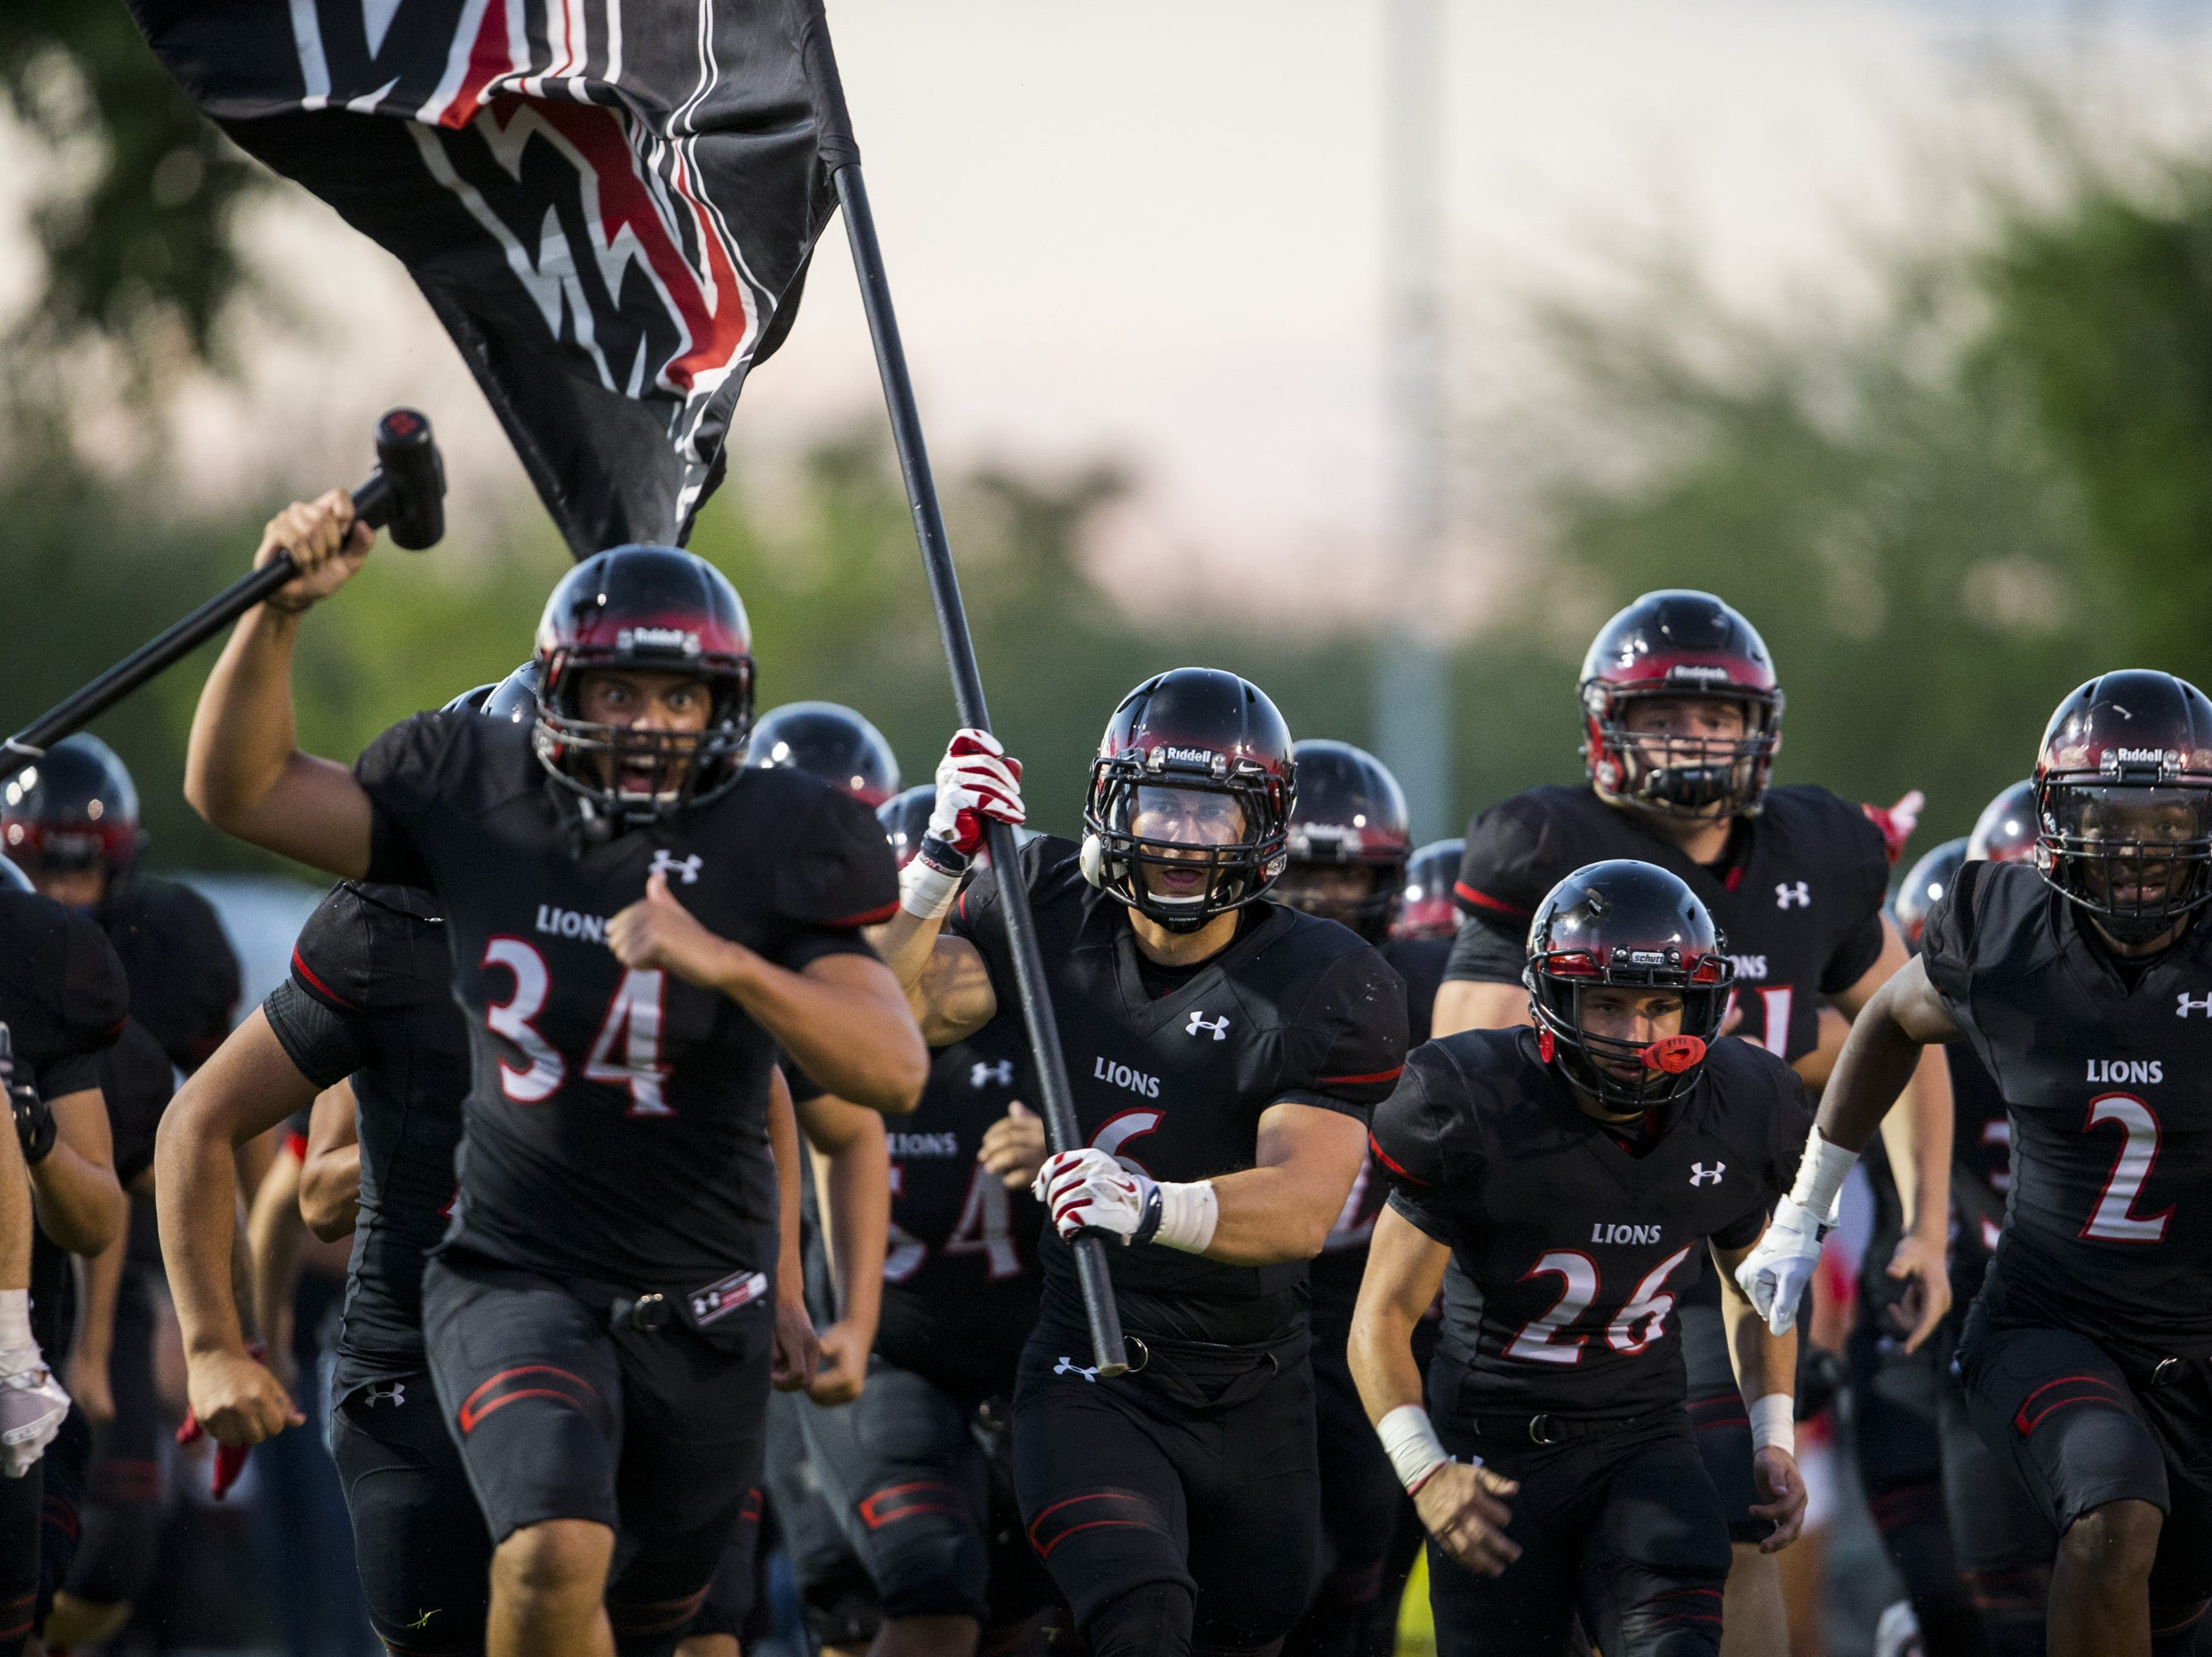 Liberty takes the field before their game against Sunrise Mountain on Friday, Aug. 31, 2018, at Liberty High School in Peoria, Ariz.  #azhsfb